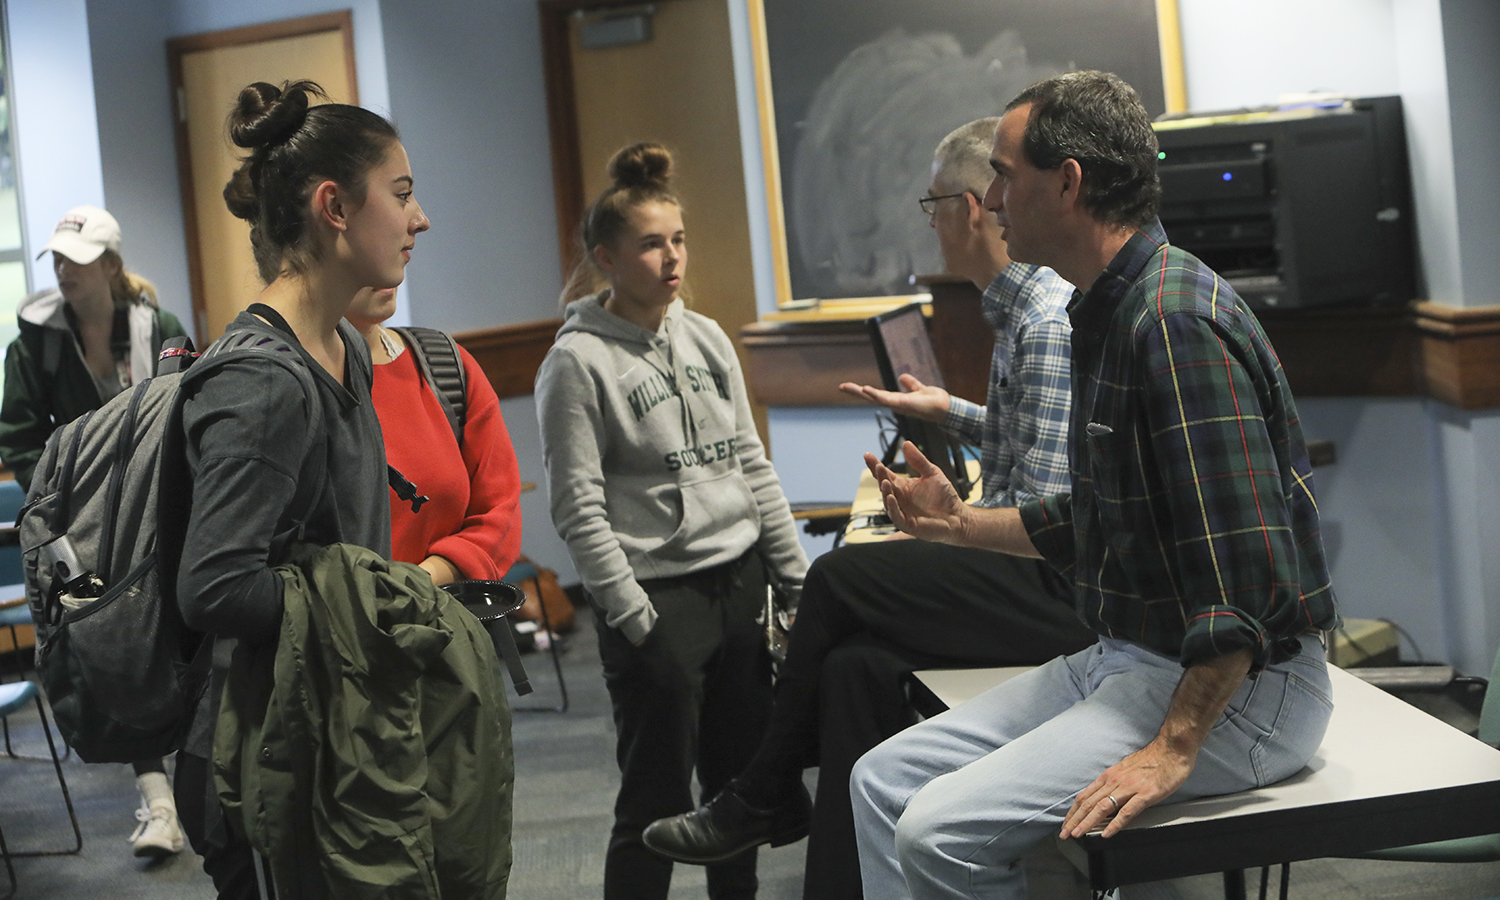 Associate Professor of Chemistry Justin Miller and Associate Director of Health Professions Counseling and Fellowship Advising Scott MacPhail speak to students about the Collegesâ pre-health program during an information session in Napier Hall.